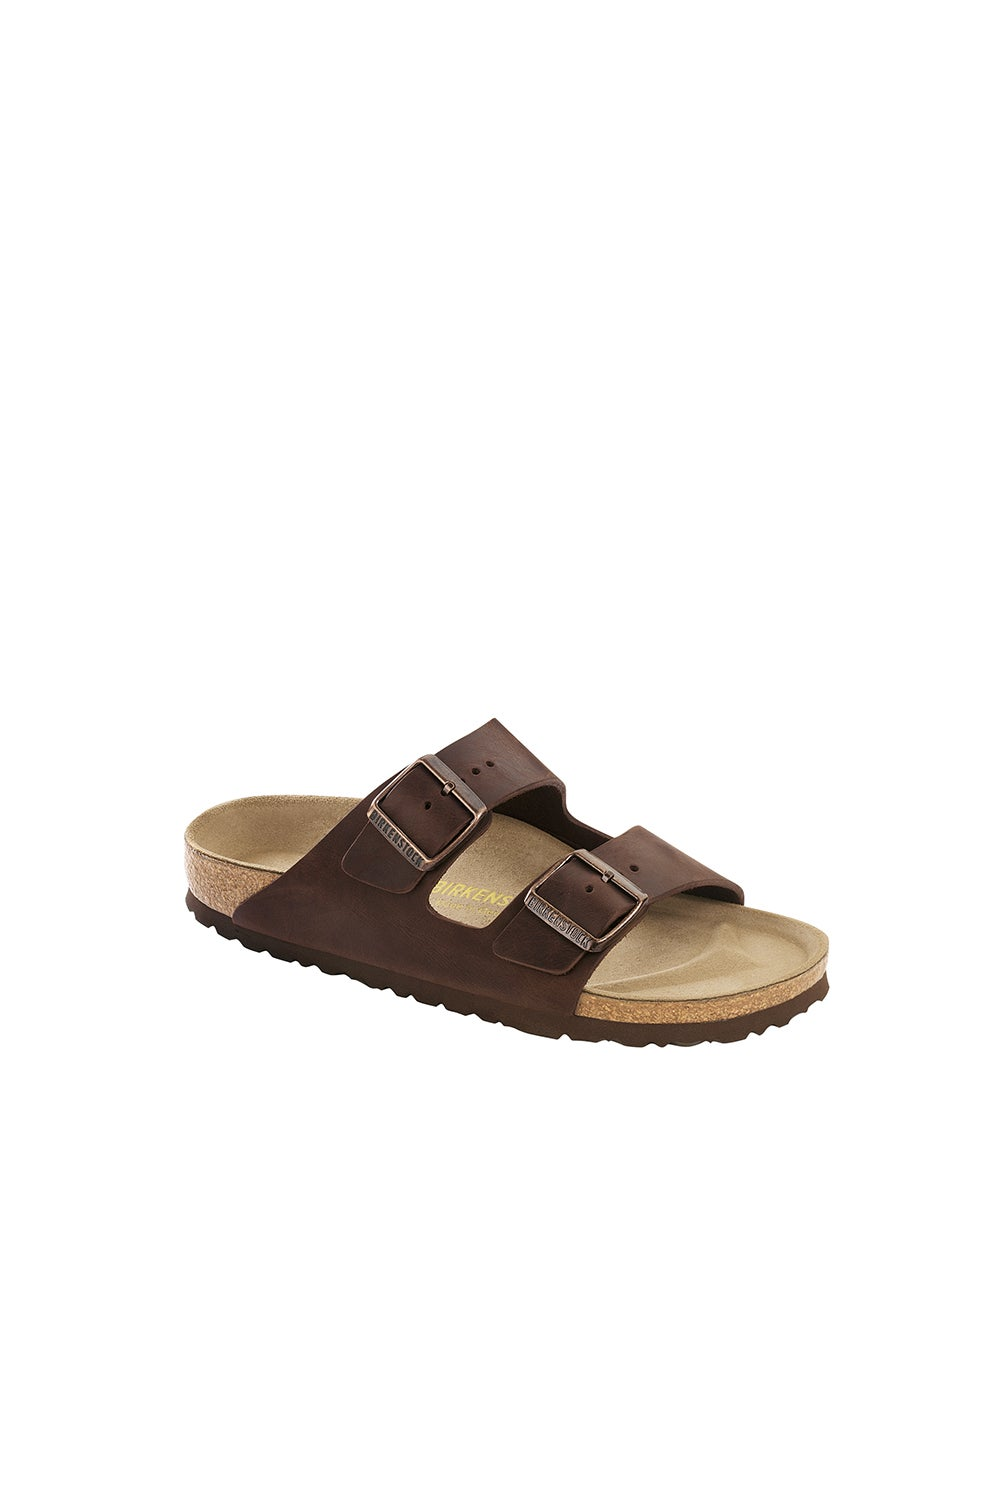 Birkenstock Arizona Narrow Fit Habana